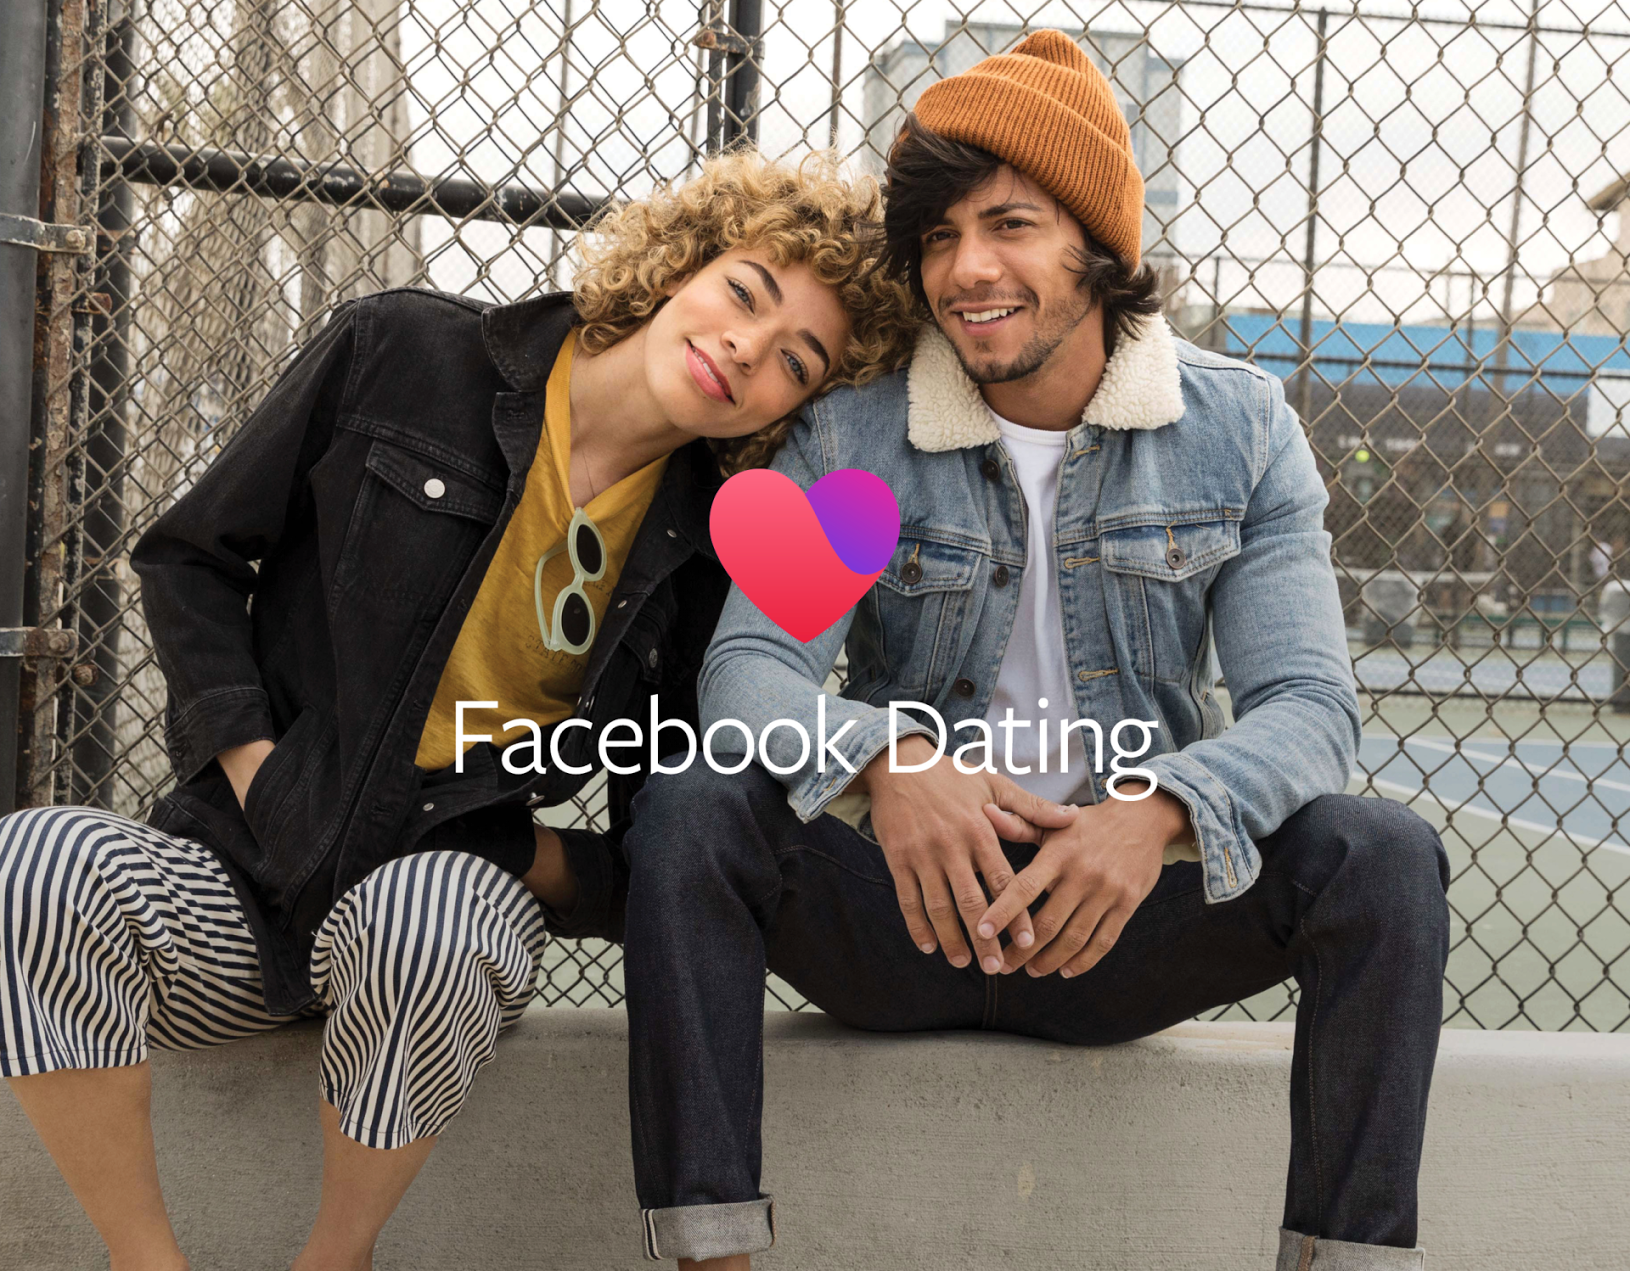 Facebook lanceert Facebook Dating